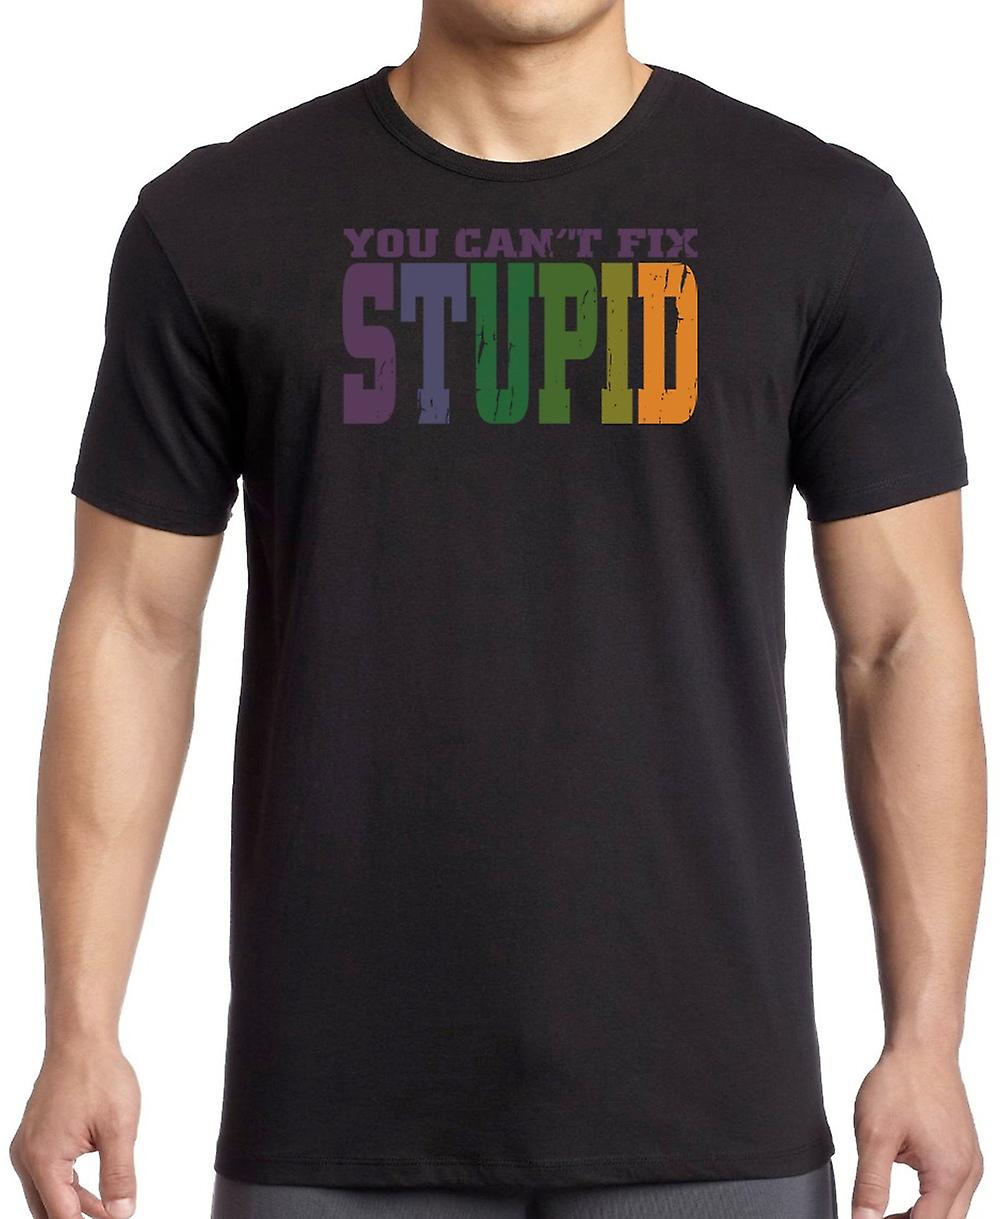 You Cant Fix Stupid - Funny Crude T Shirt